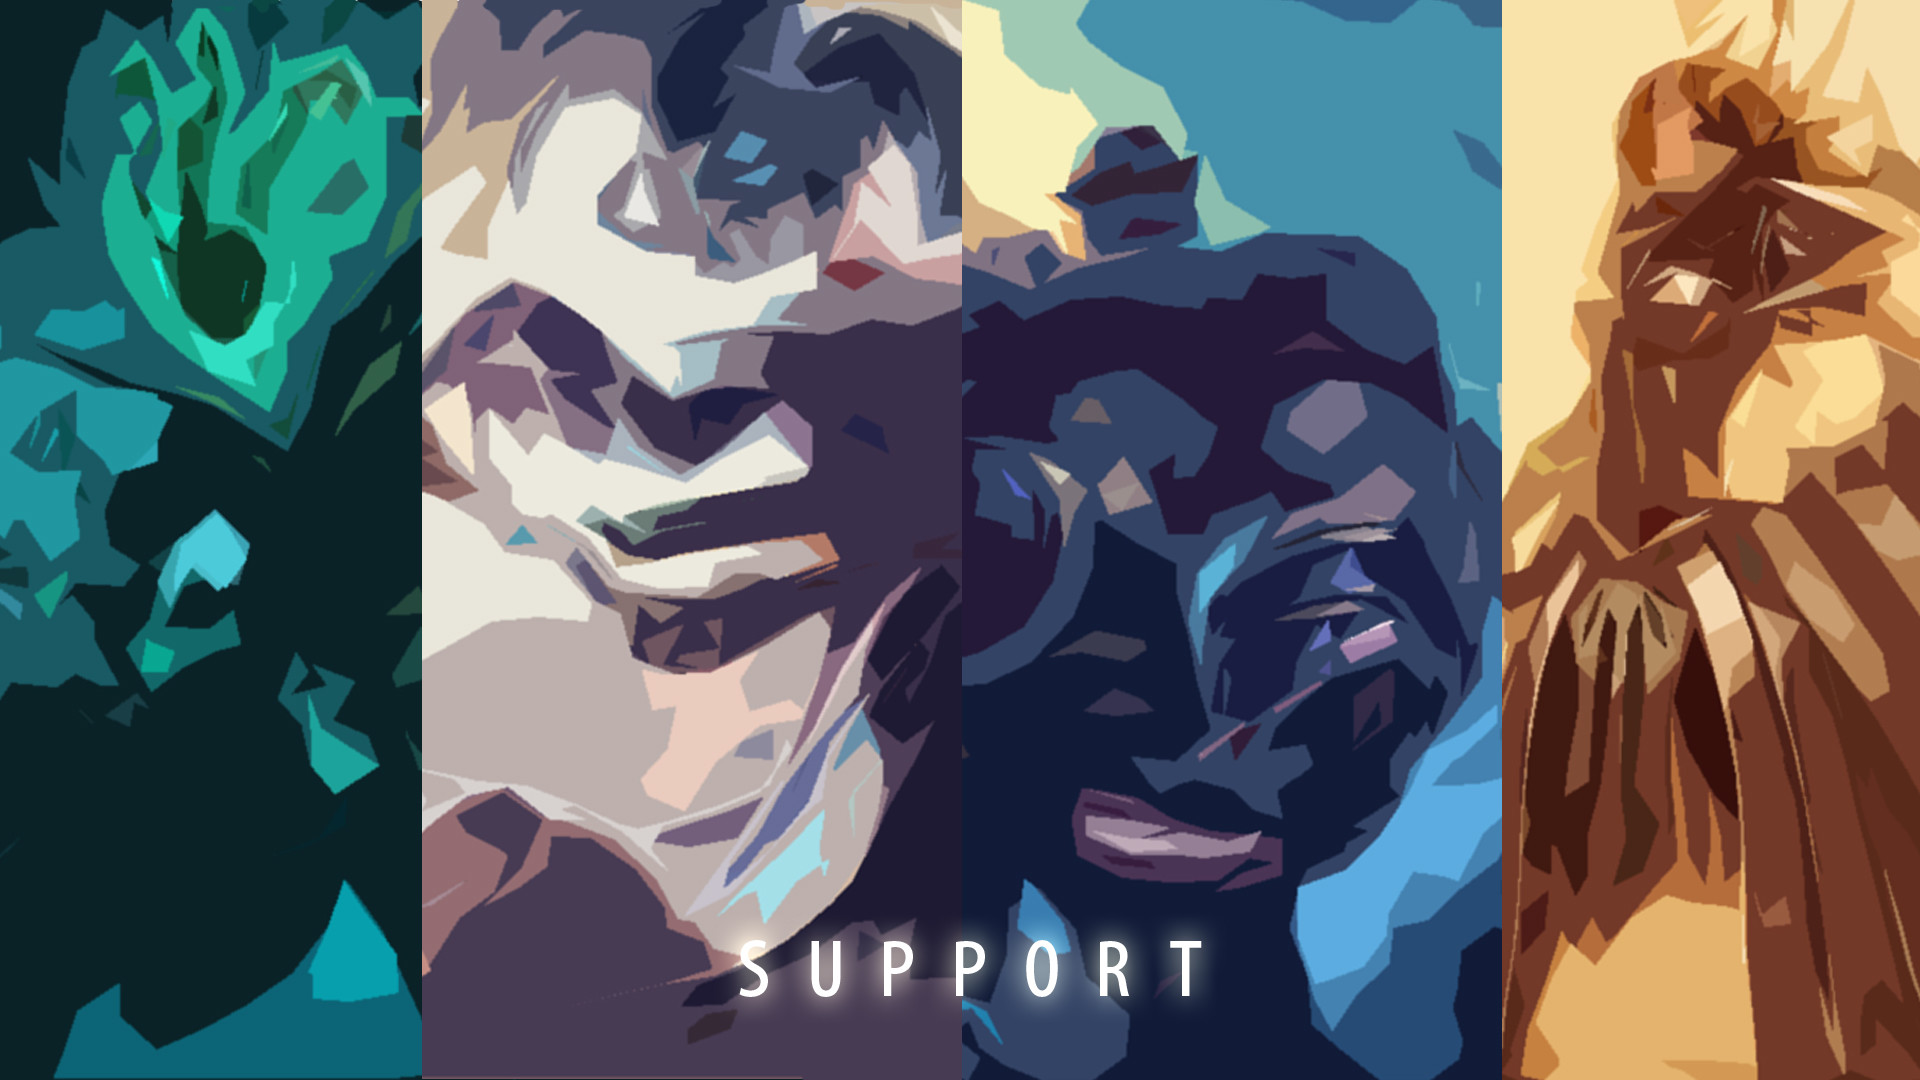 … League of Legends – Support by Ztanley